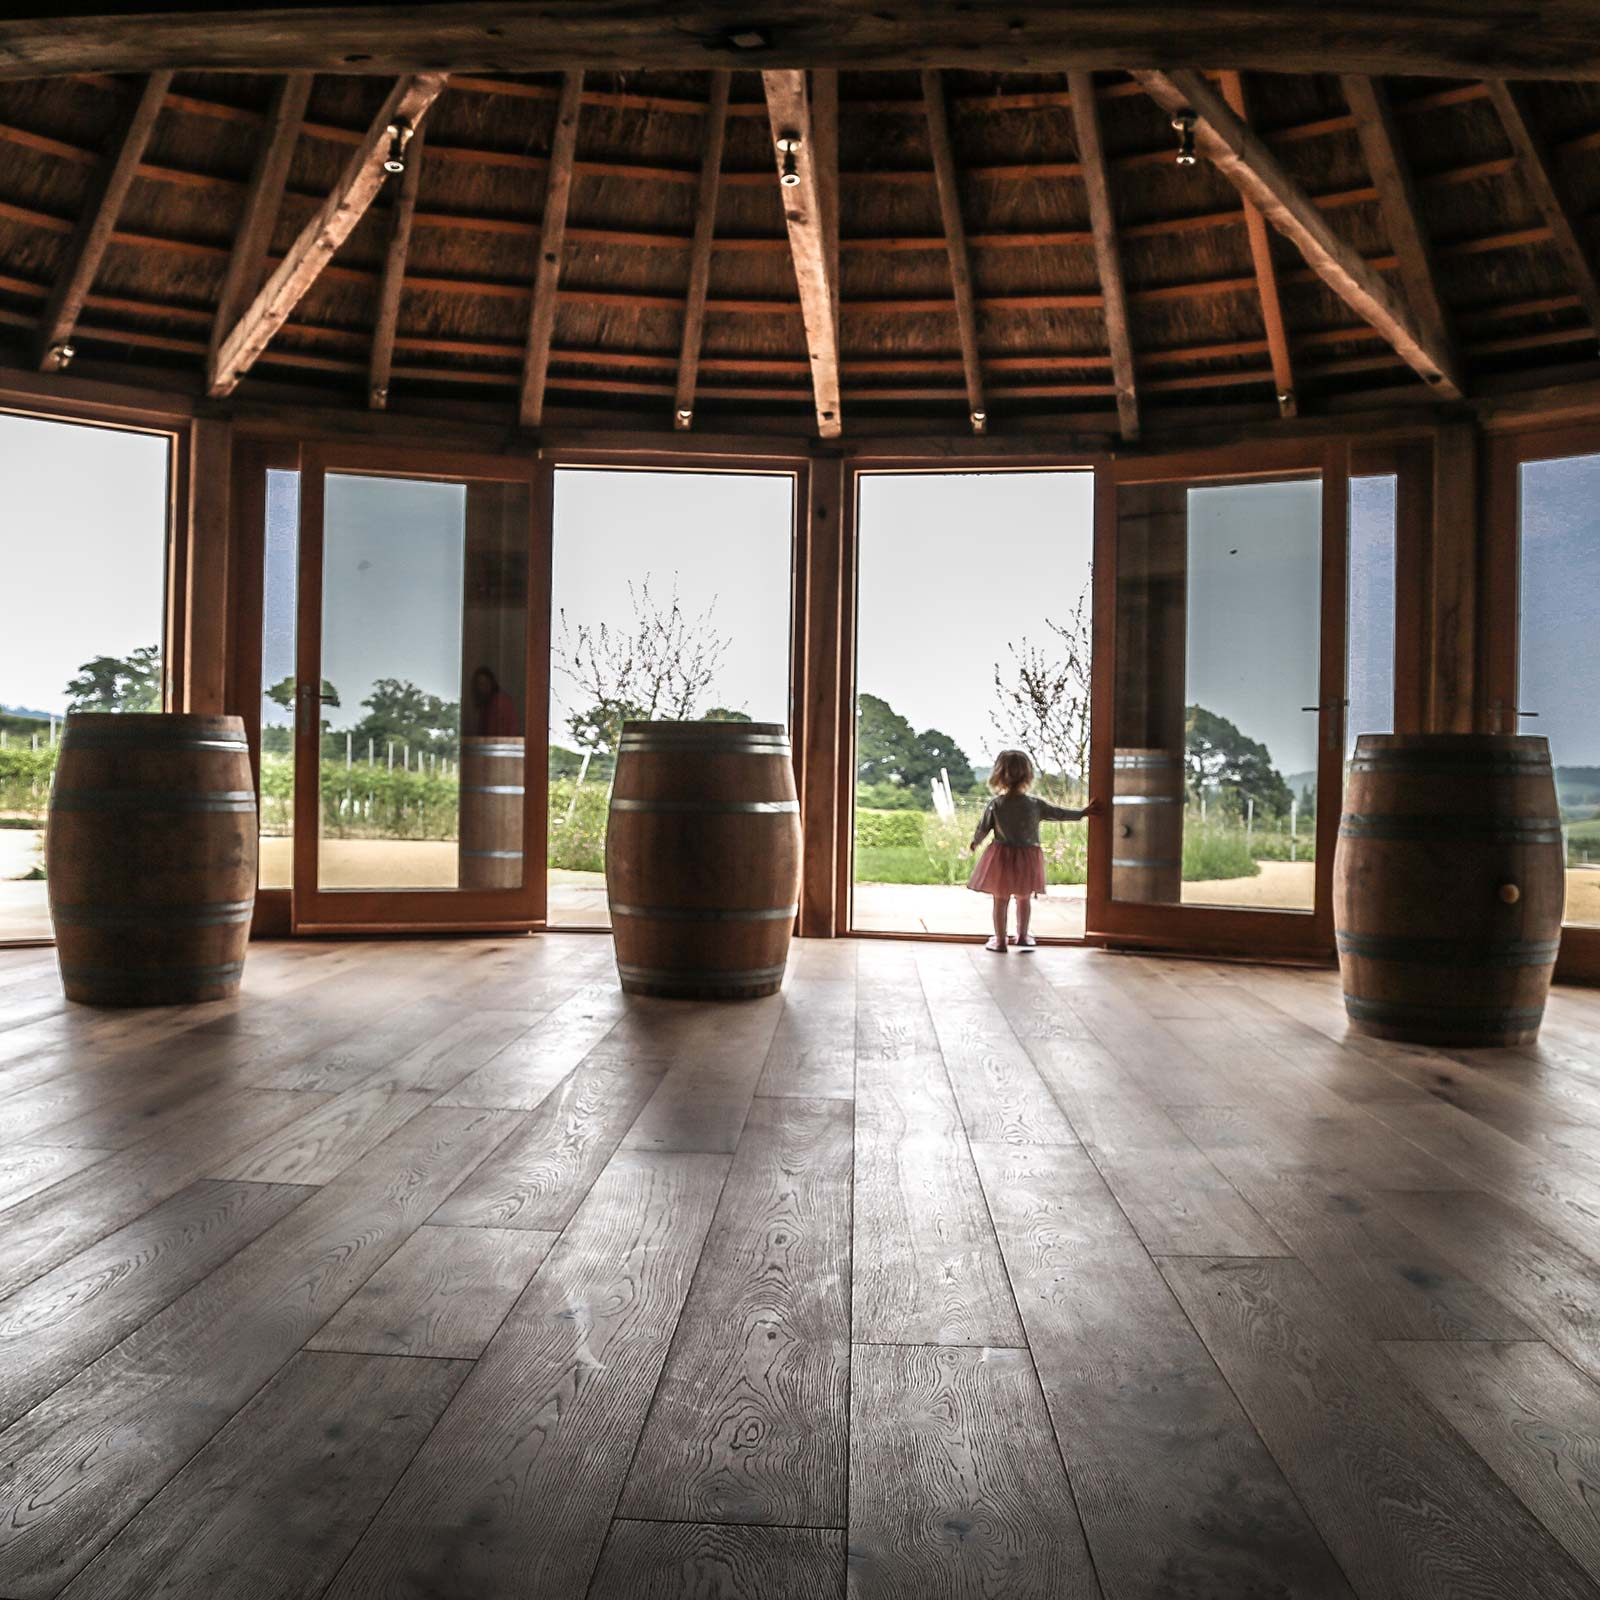 Inside the round house, a small wedding and events venue at Brickhouse Vineyard.